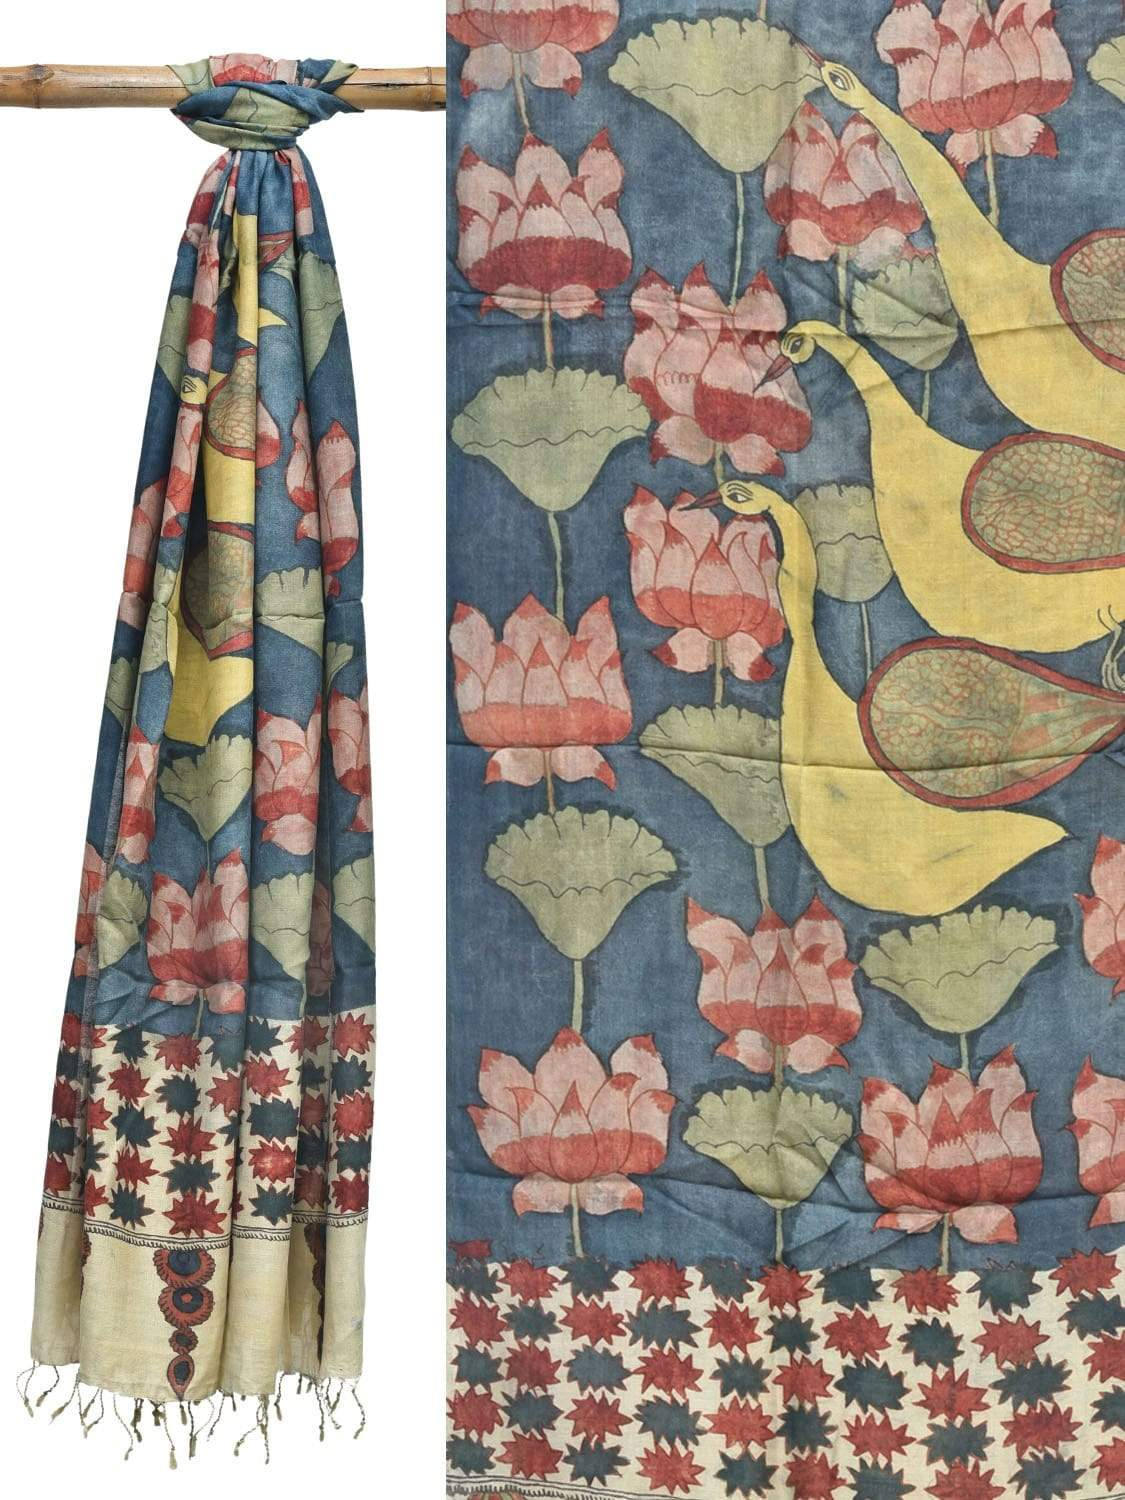 Blue Kalamkari Hand Painted Muga Handloom Dupatta with Lotus Flowers and Birds Design ds1934